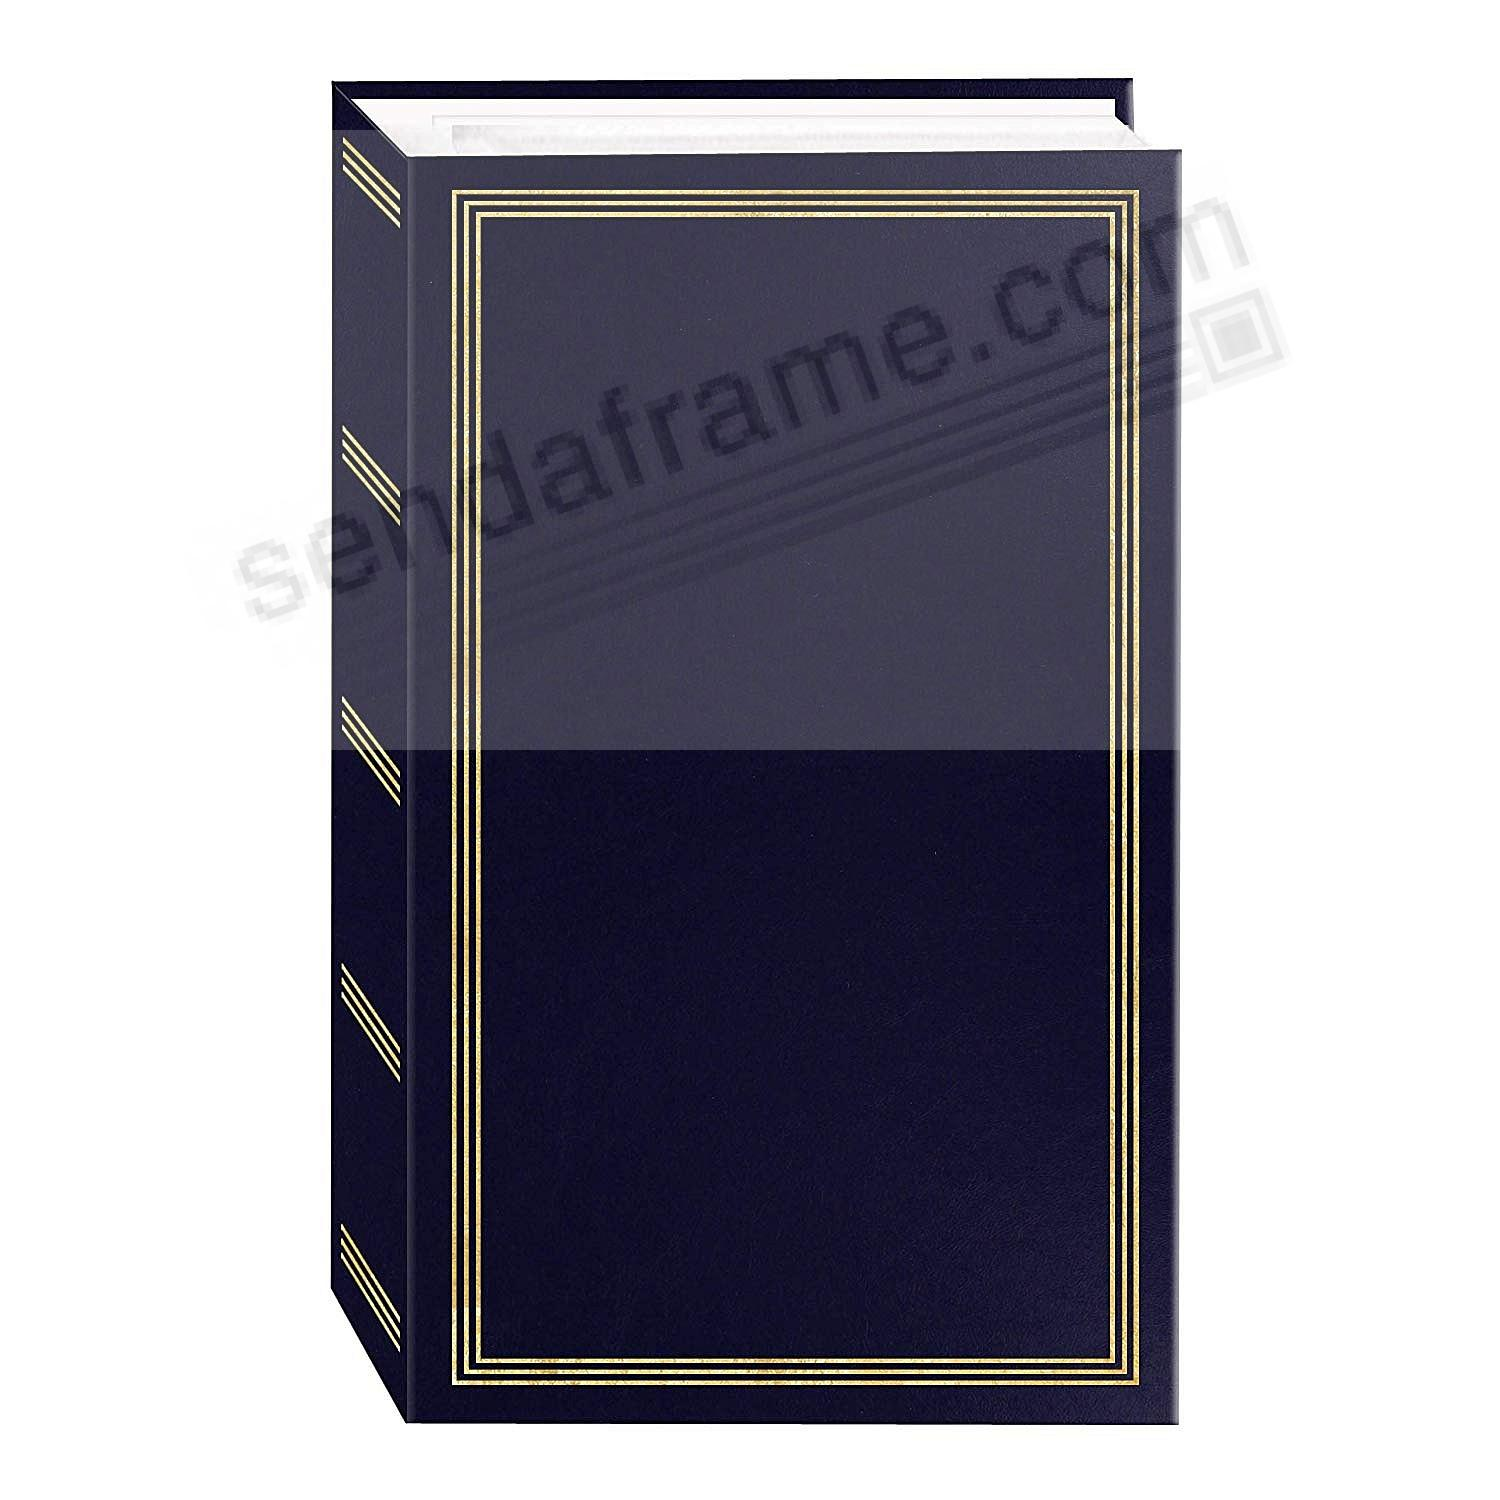 3-ring / 3-up slip-in pocket NAVY-BLUE binder album for 300+ photos